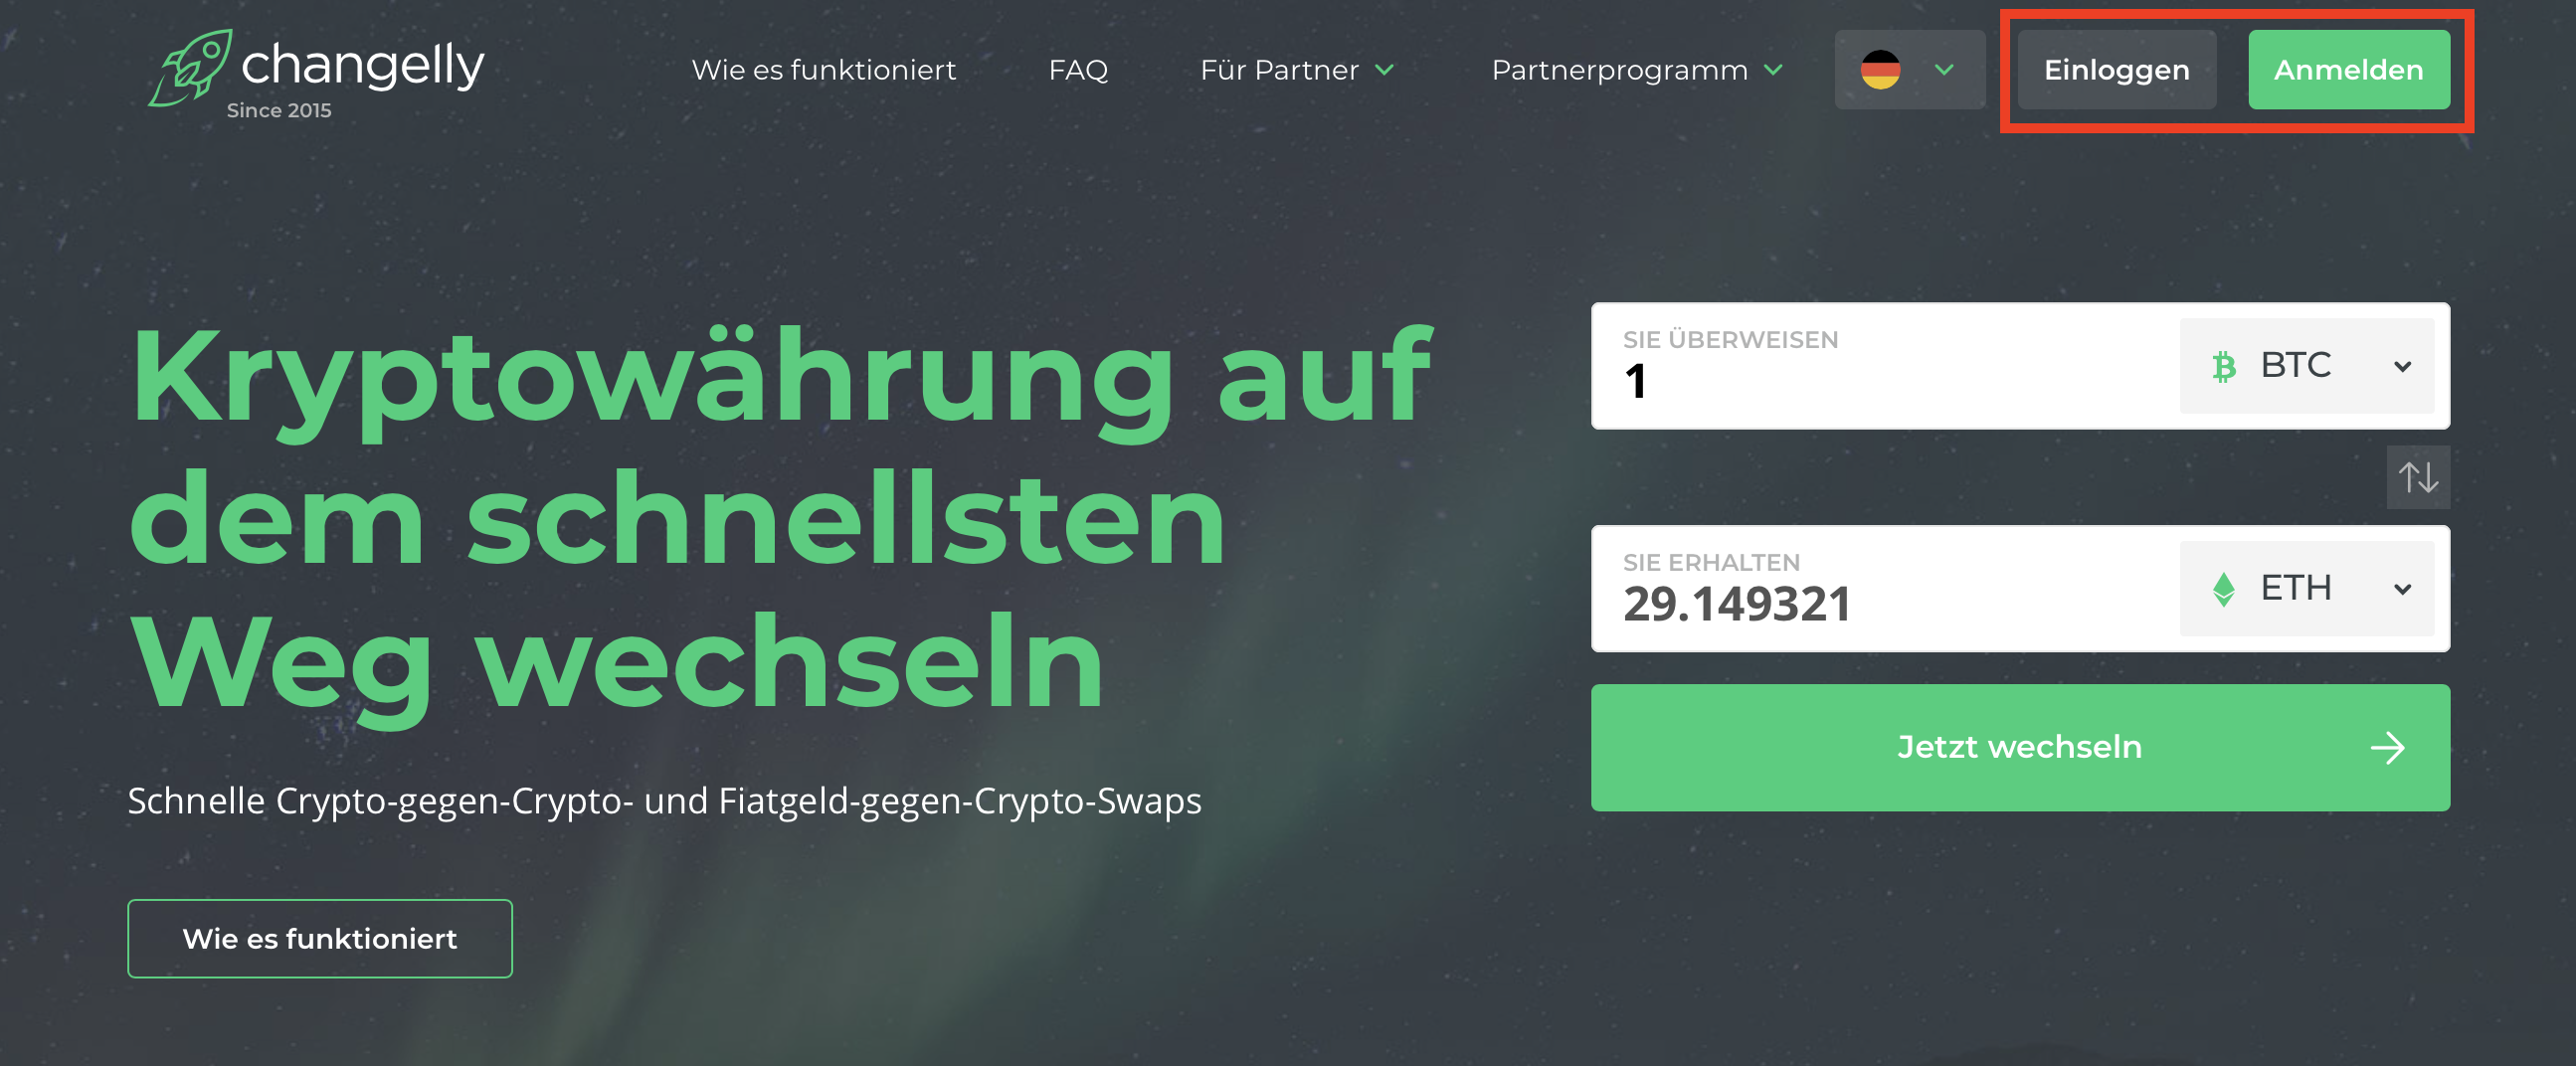 Changelly login registratie